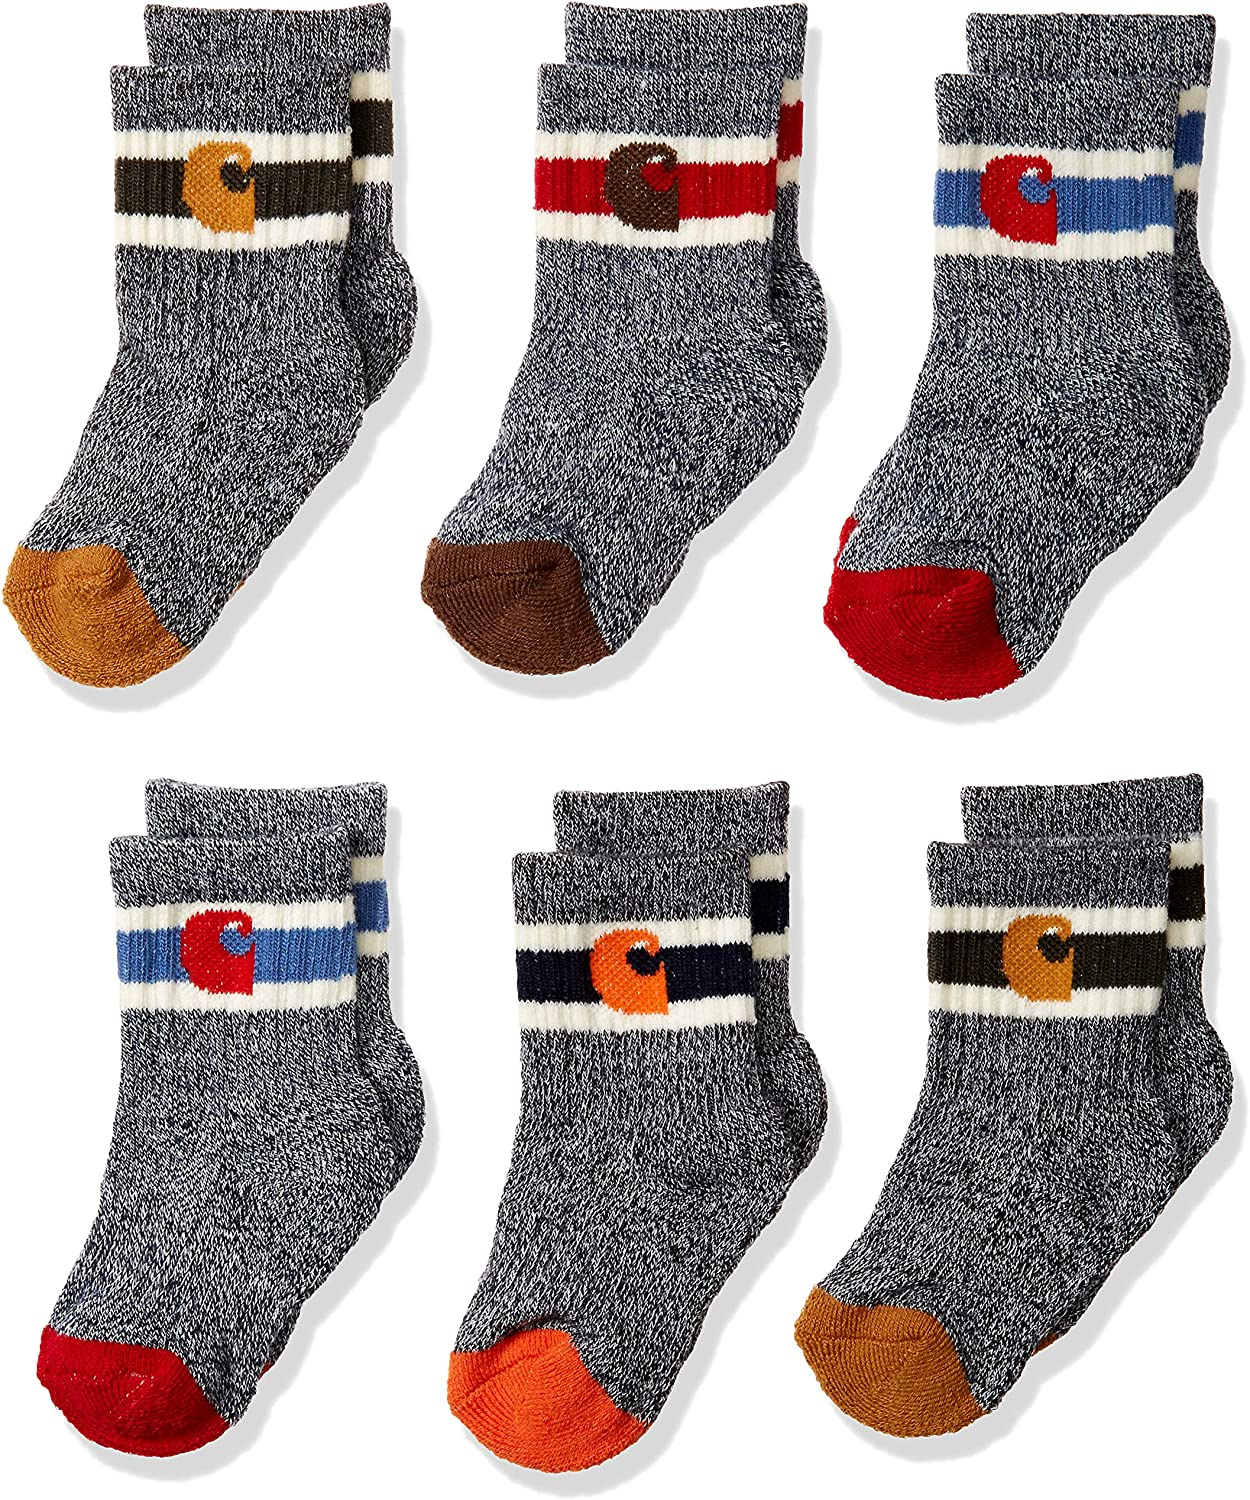 Carhartt Baby Boys Camp Crew Sock-6 Pair Pack, natural, tan, orange, red, brown, Shoes Size: 1.5-4 (6-18 Months): Clothing